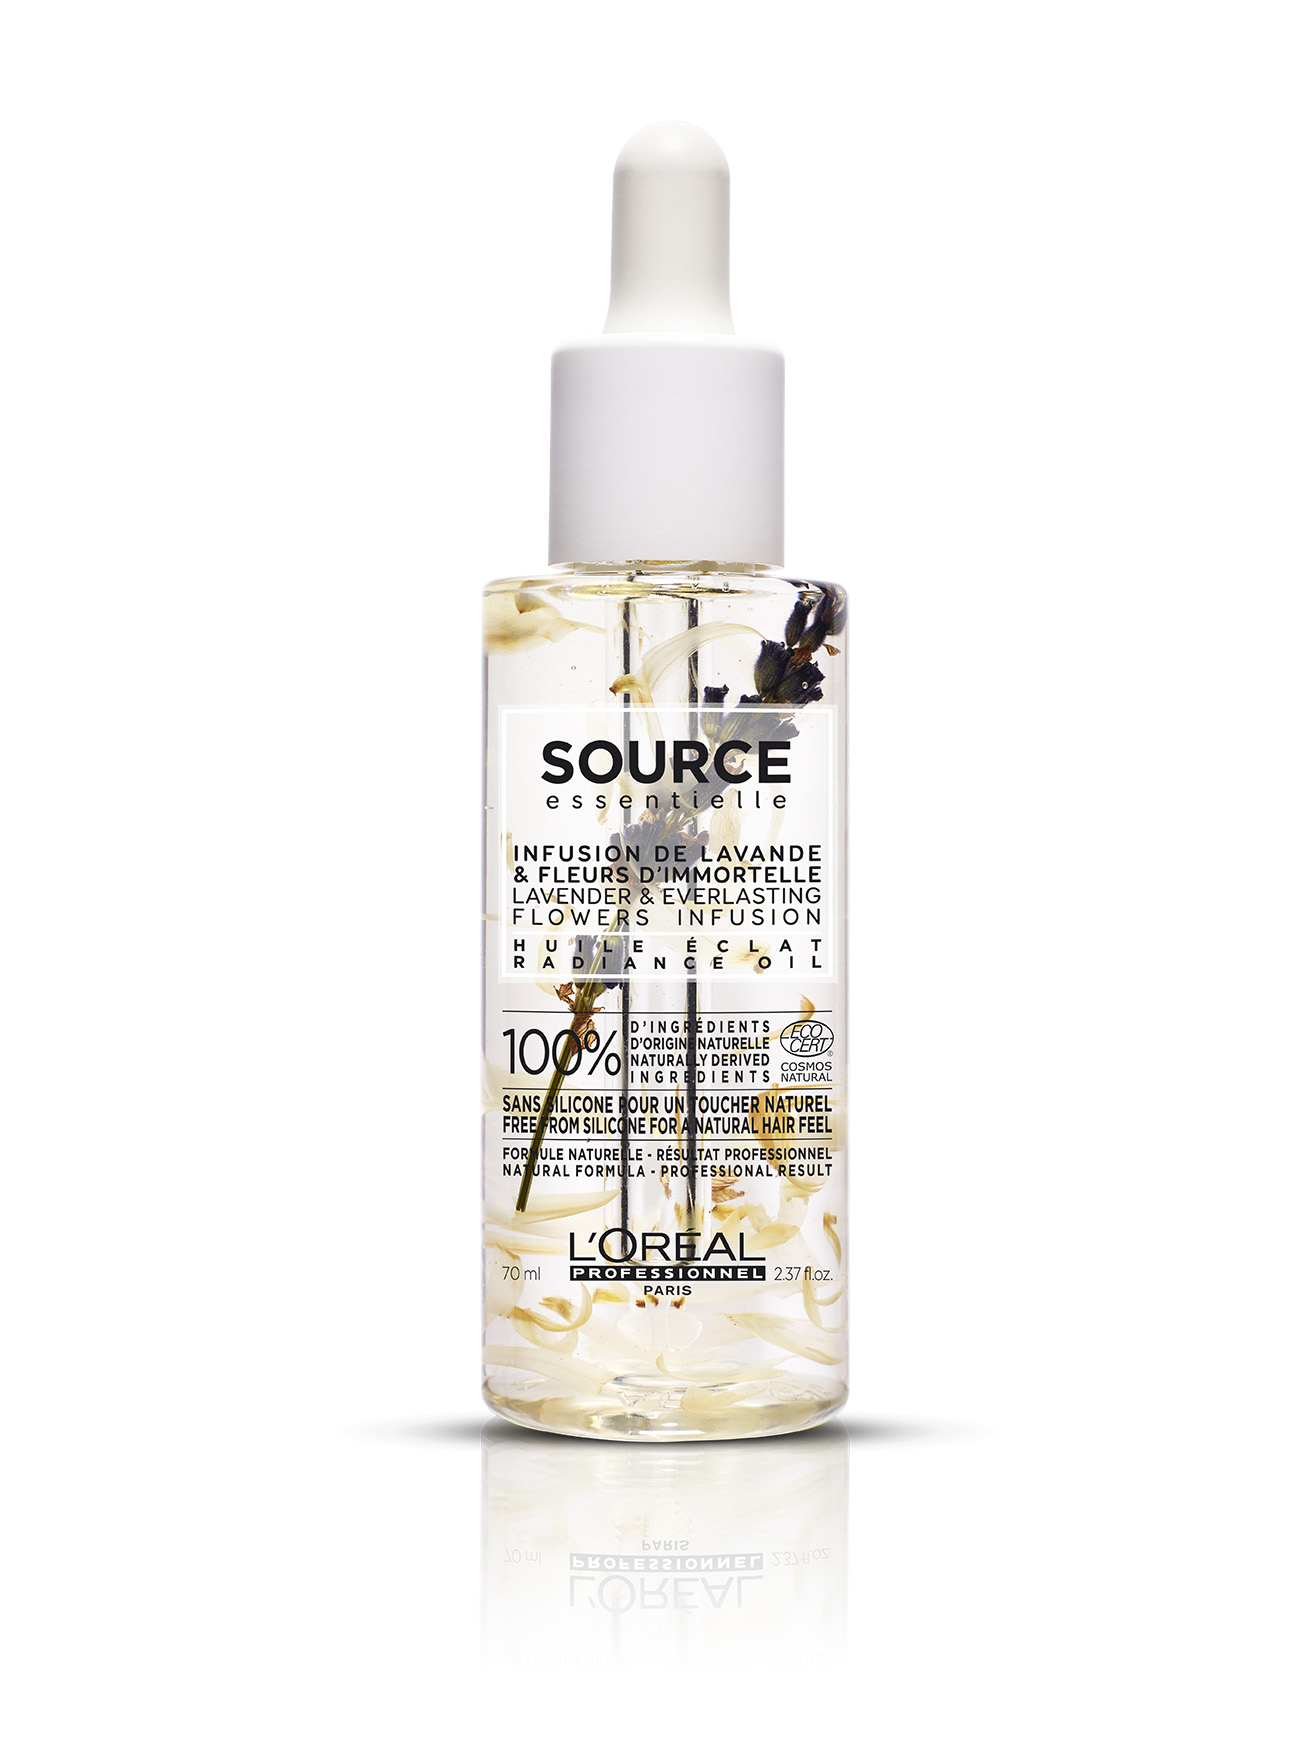 1.RADIANCE OIL FRONT